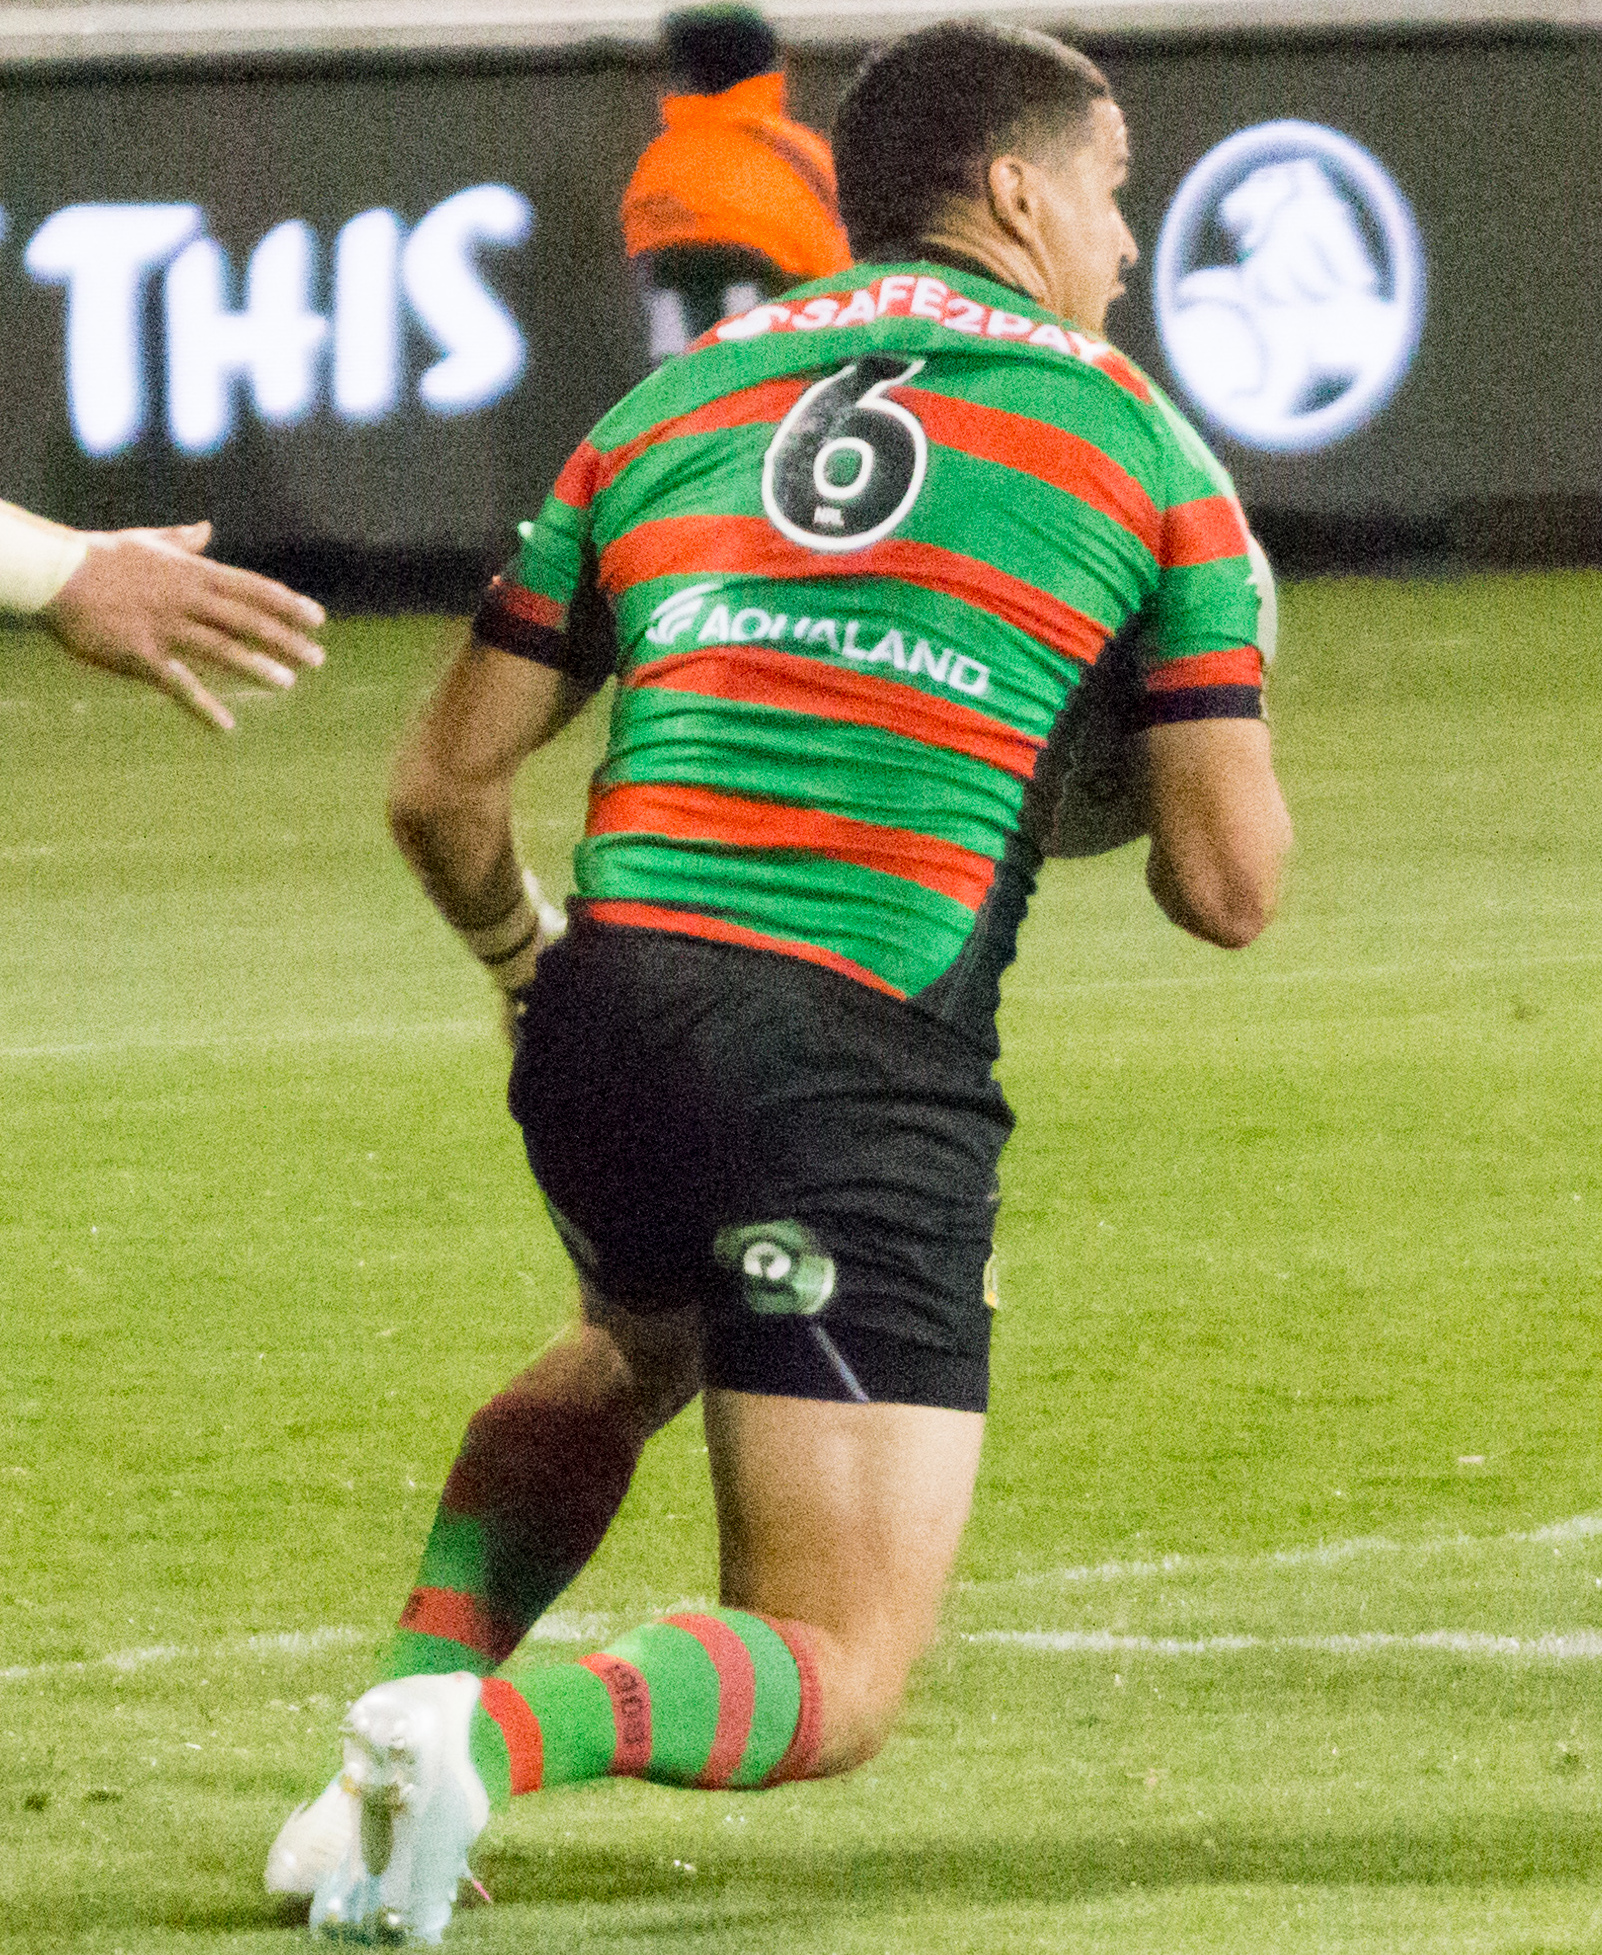 Cody Walker Rugby League Wikipedia